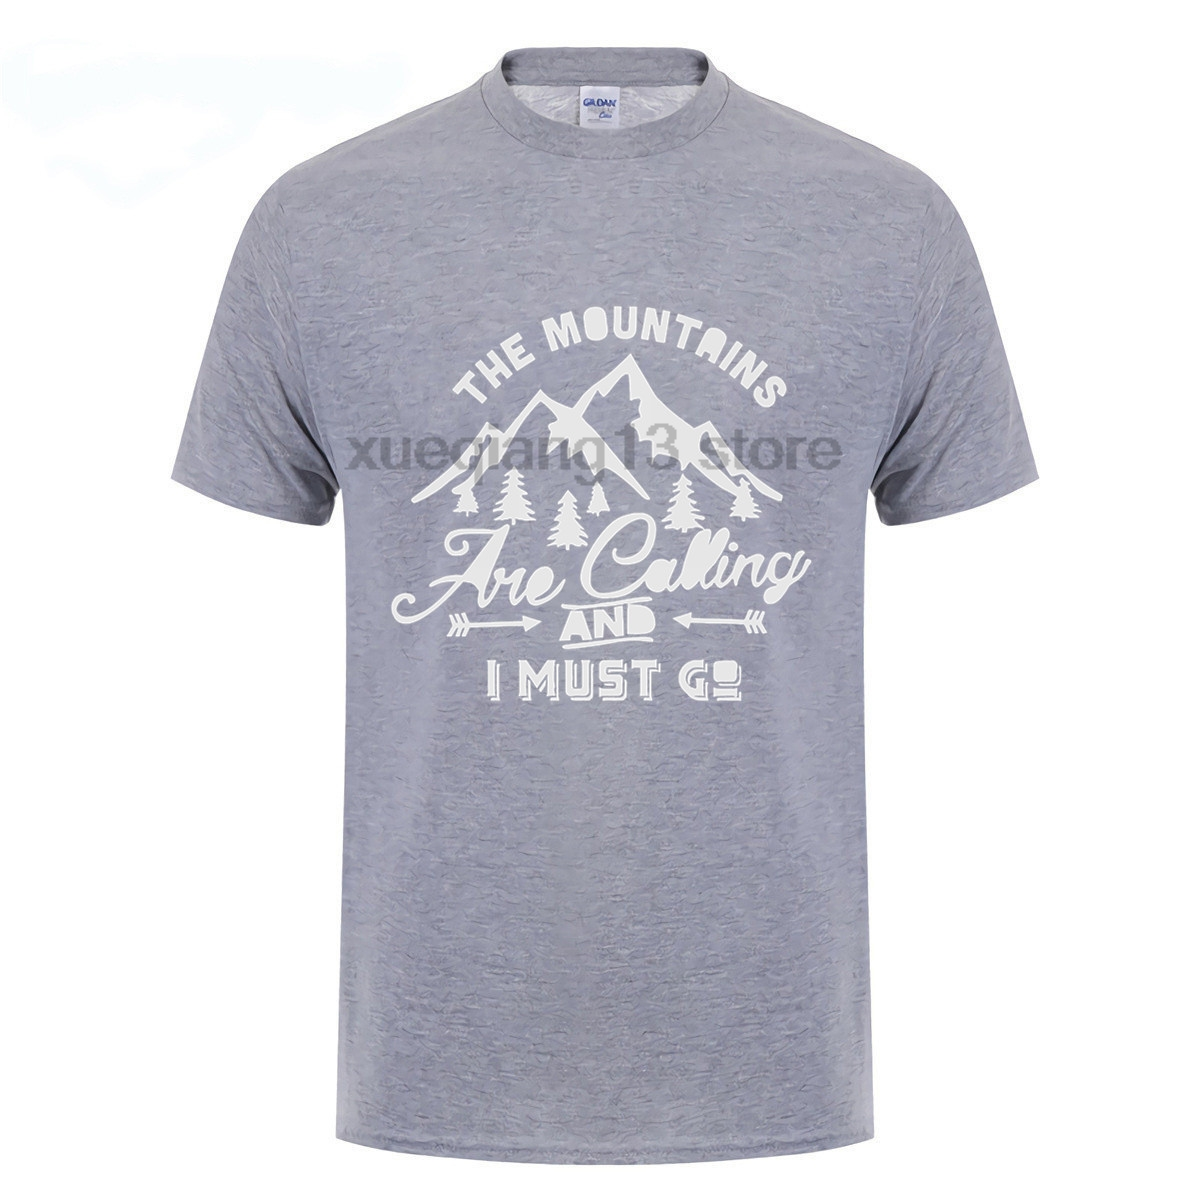 3956dd13691b4 The Mountains Are Calling And I Must Go Hike Adventure Traveler Men S T  Shirt-in T-Shirts from Men s Clothing on Aliexpress.com